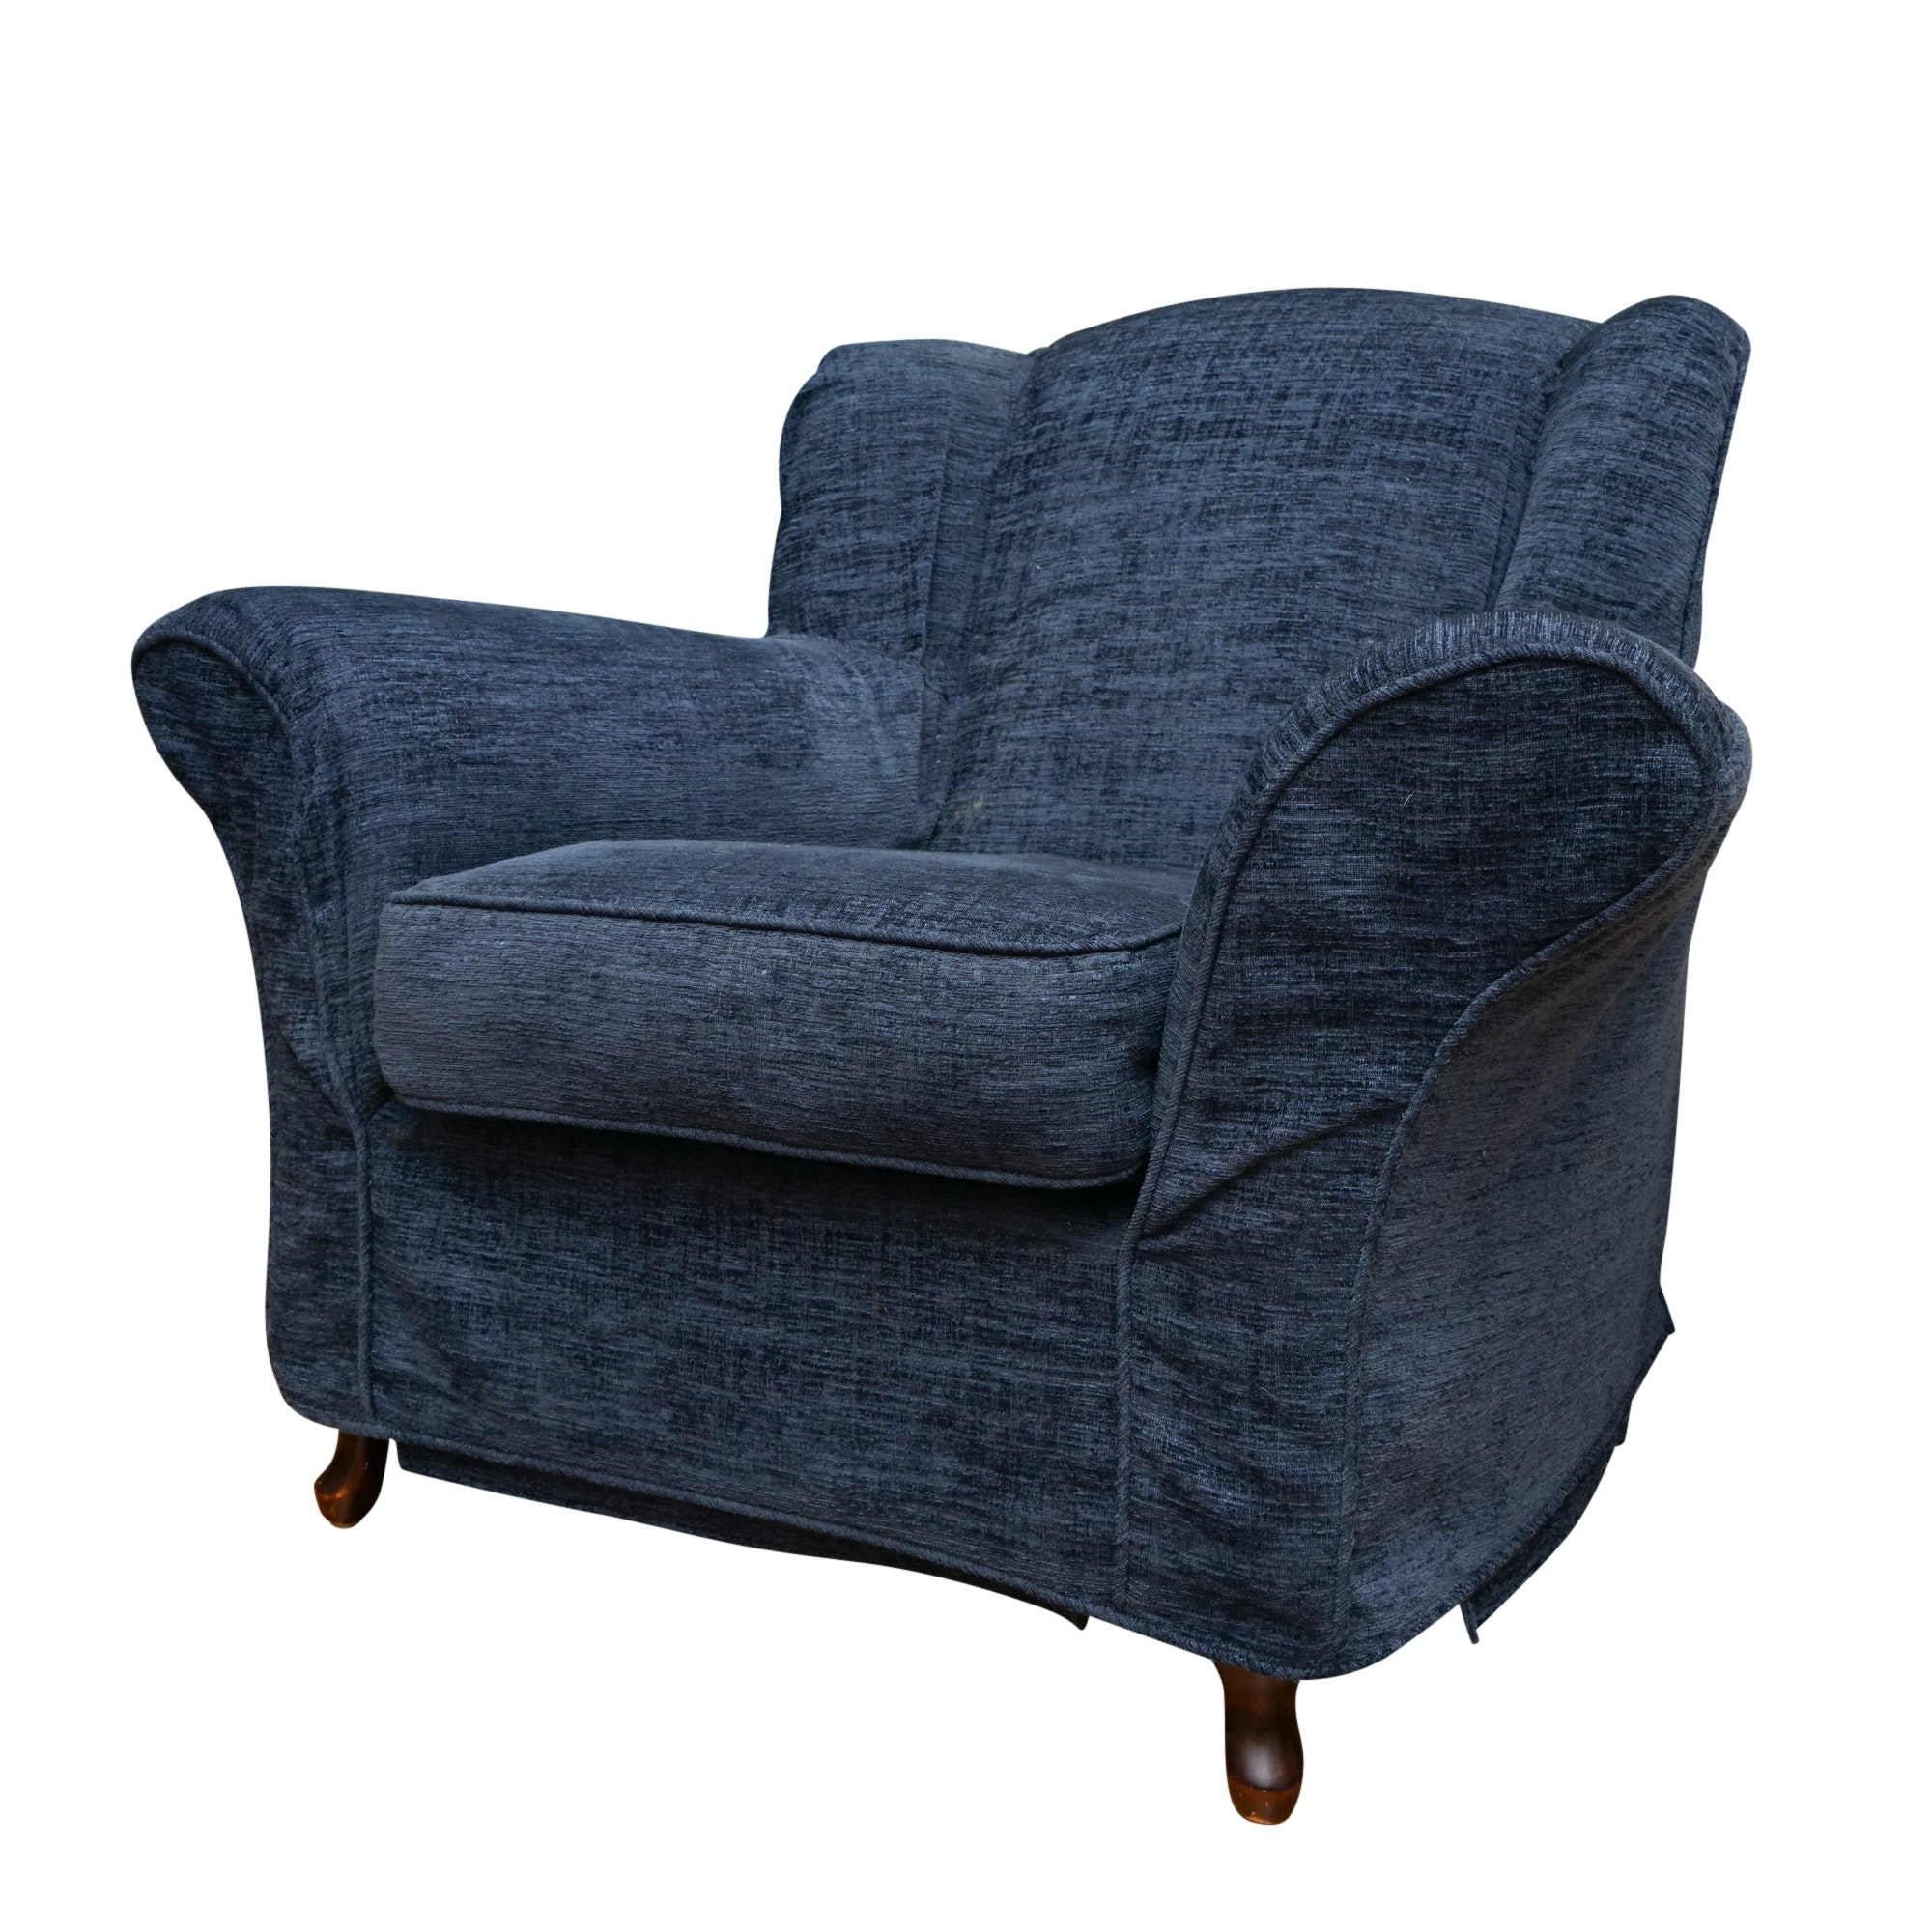 Wingback Oversized Lounge Chair with Blue Slipcover from Crate & Barrel